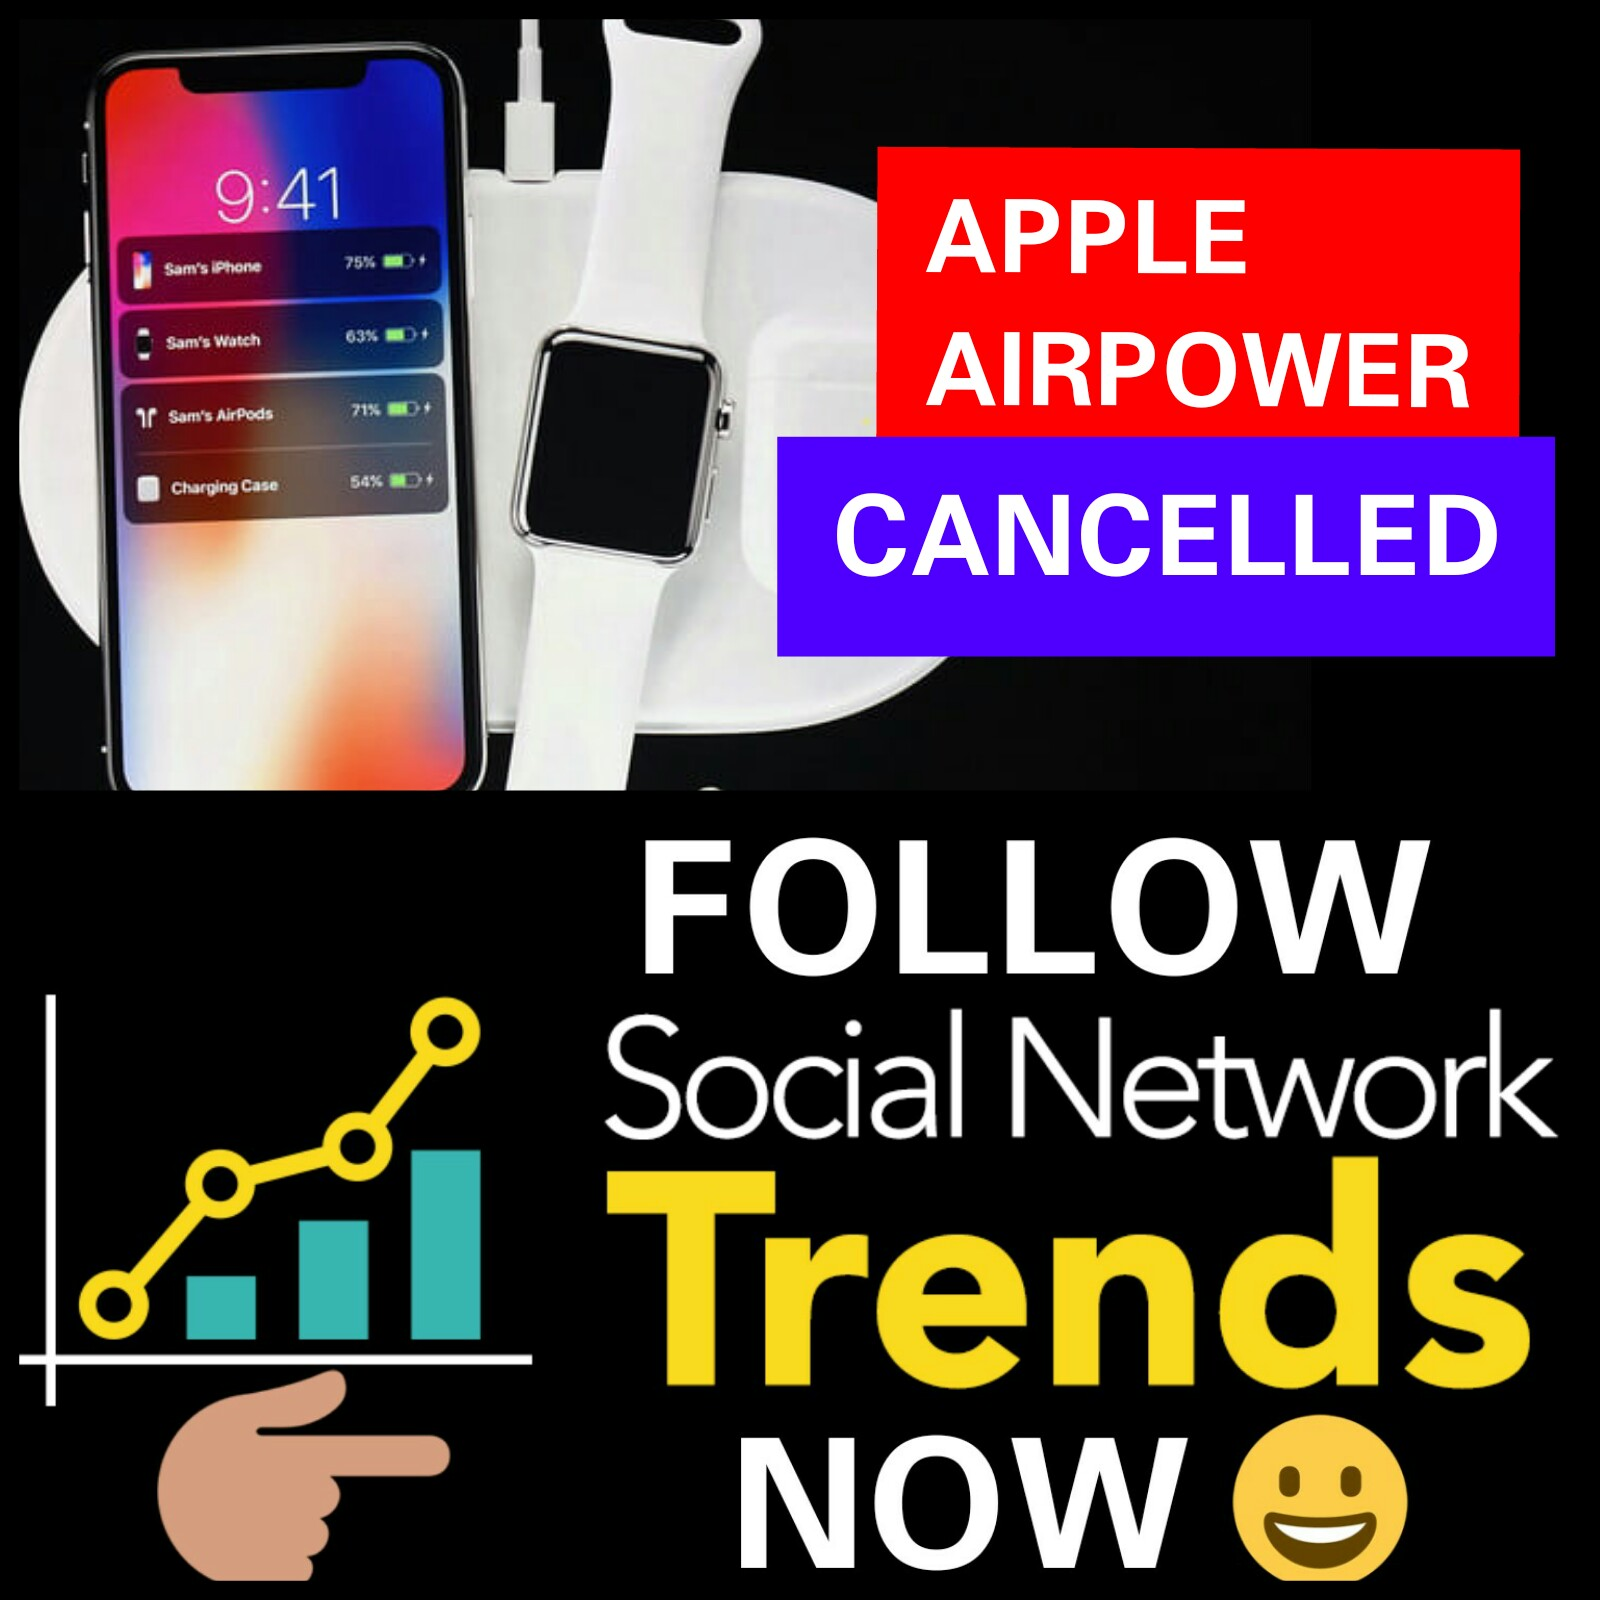 Social Networking Trends | Social Network Trends 2019 - www